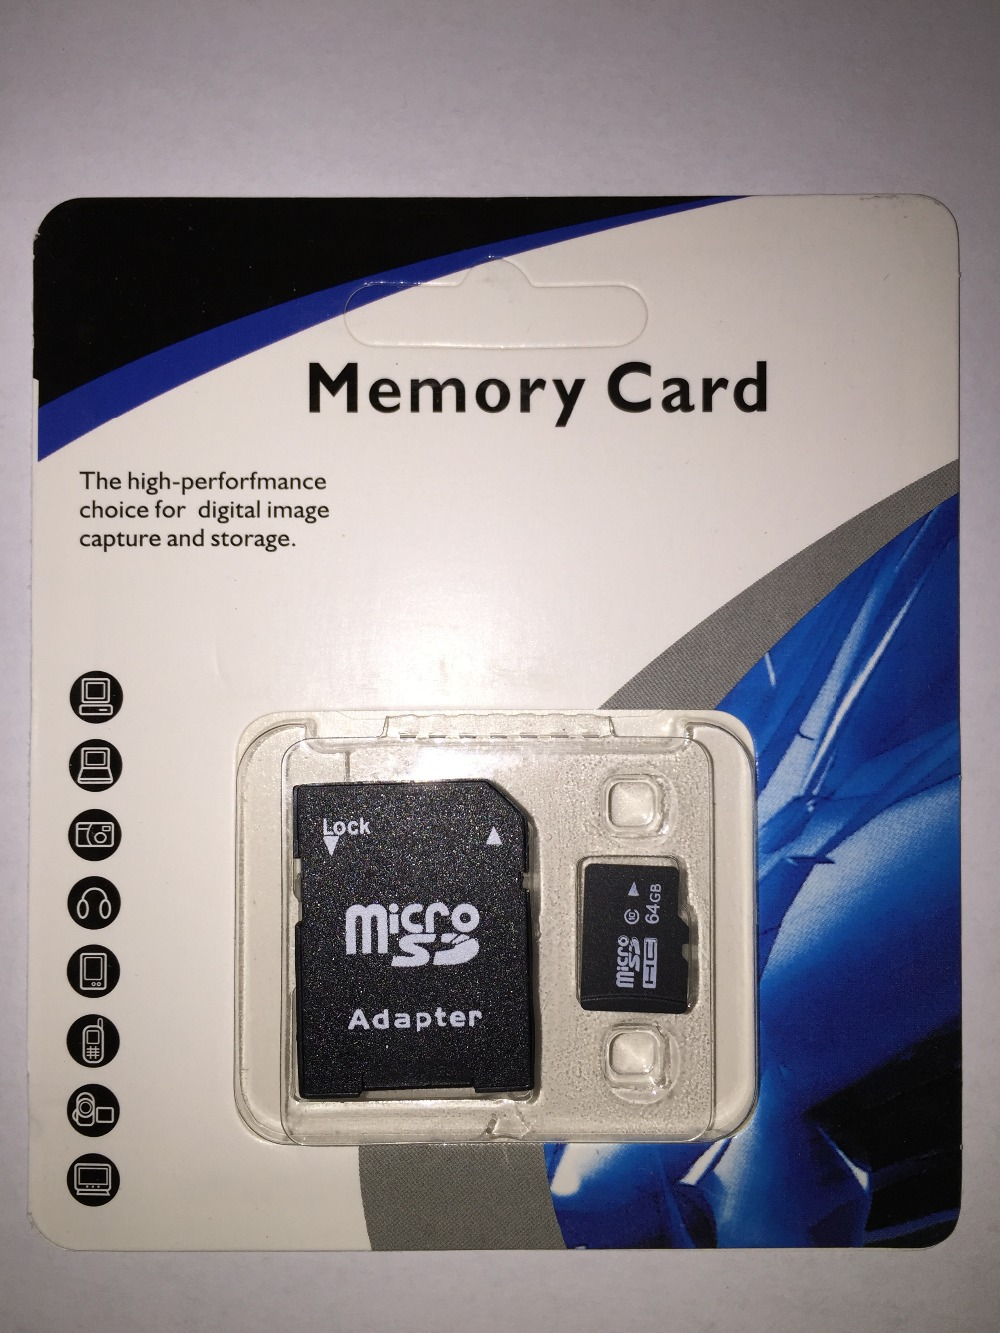 2015 Hotsale!!! Micro SD card SDHC TF Memory card 4gb 8gb 16gb 32gb 64GB with MP3 Camera moblie phone Gift +card reader(China (Mainland))